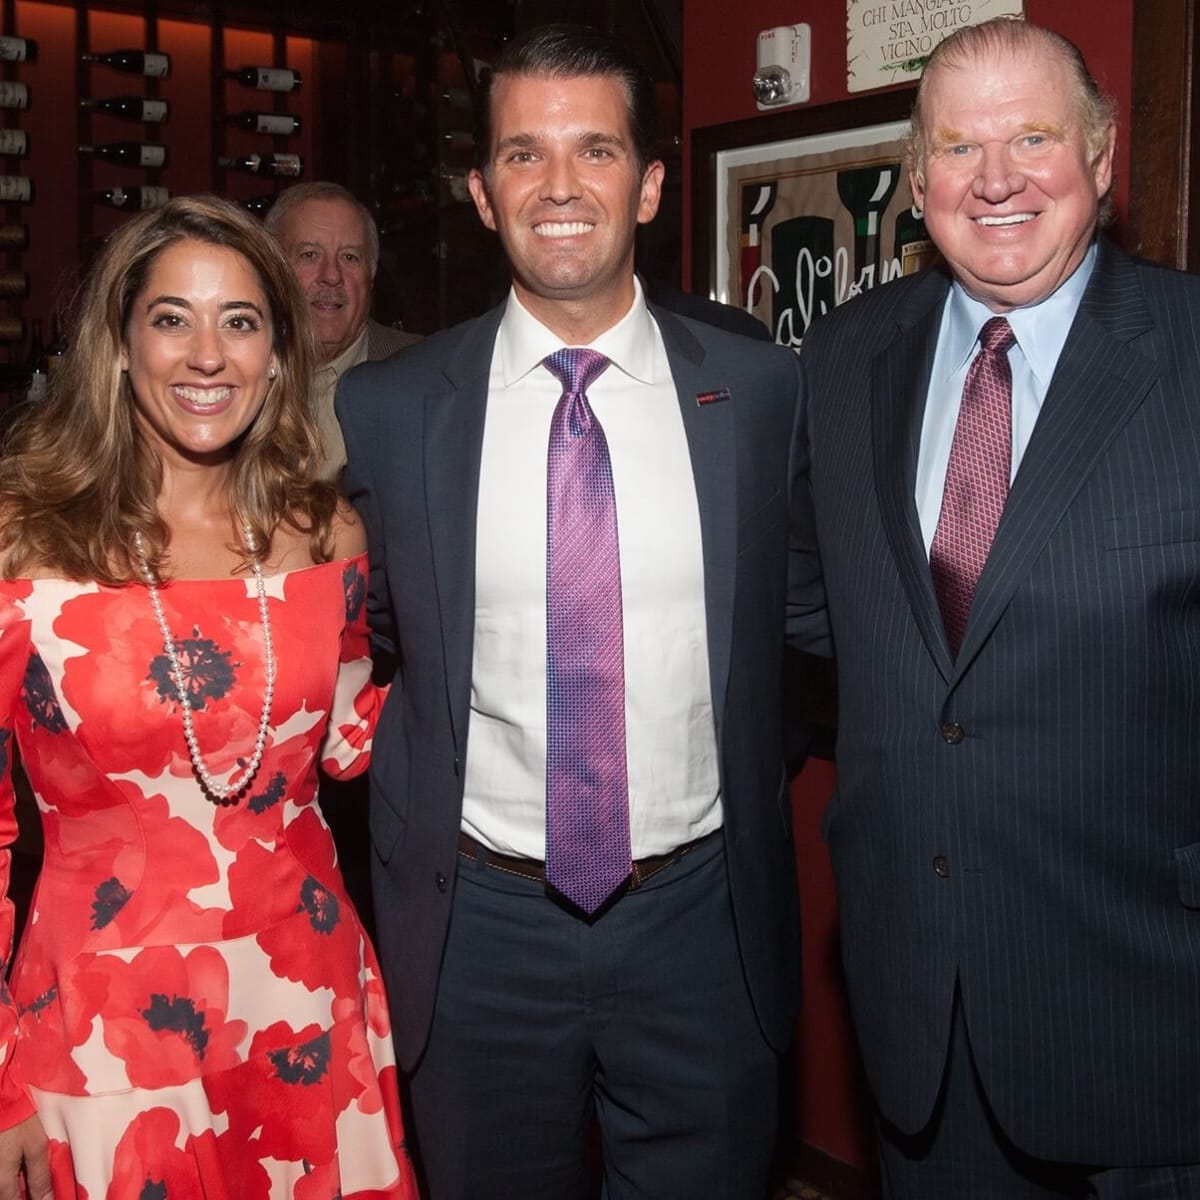 Kristina Somerville, Donald Trump Jr., Paul Somerville